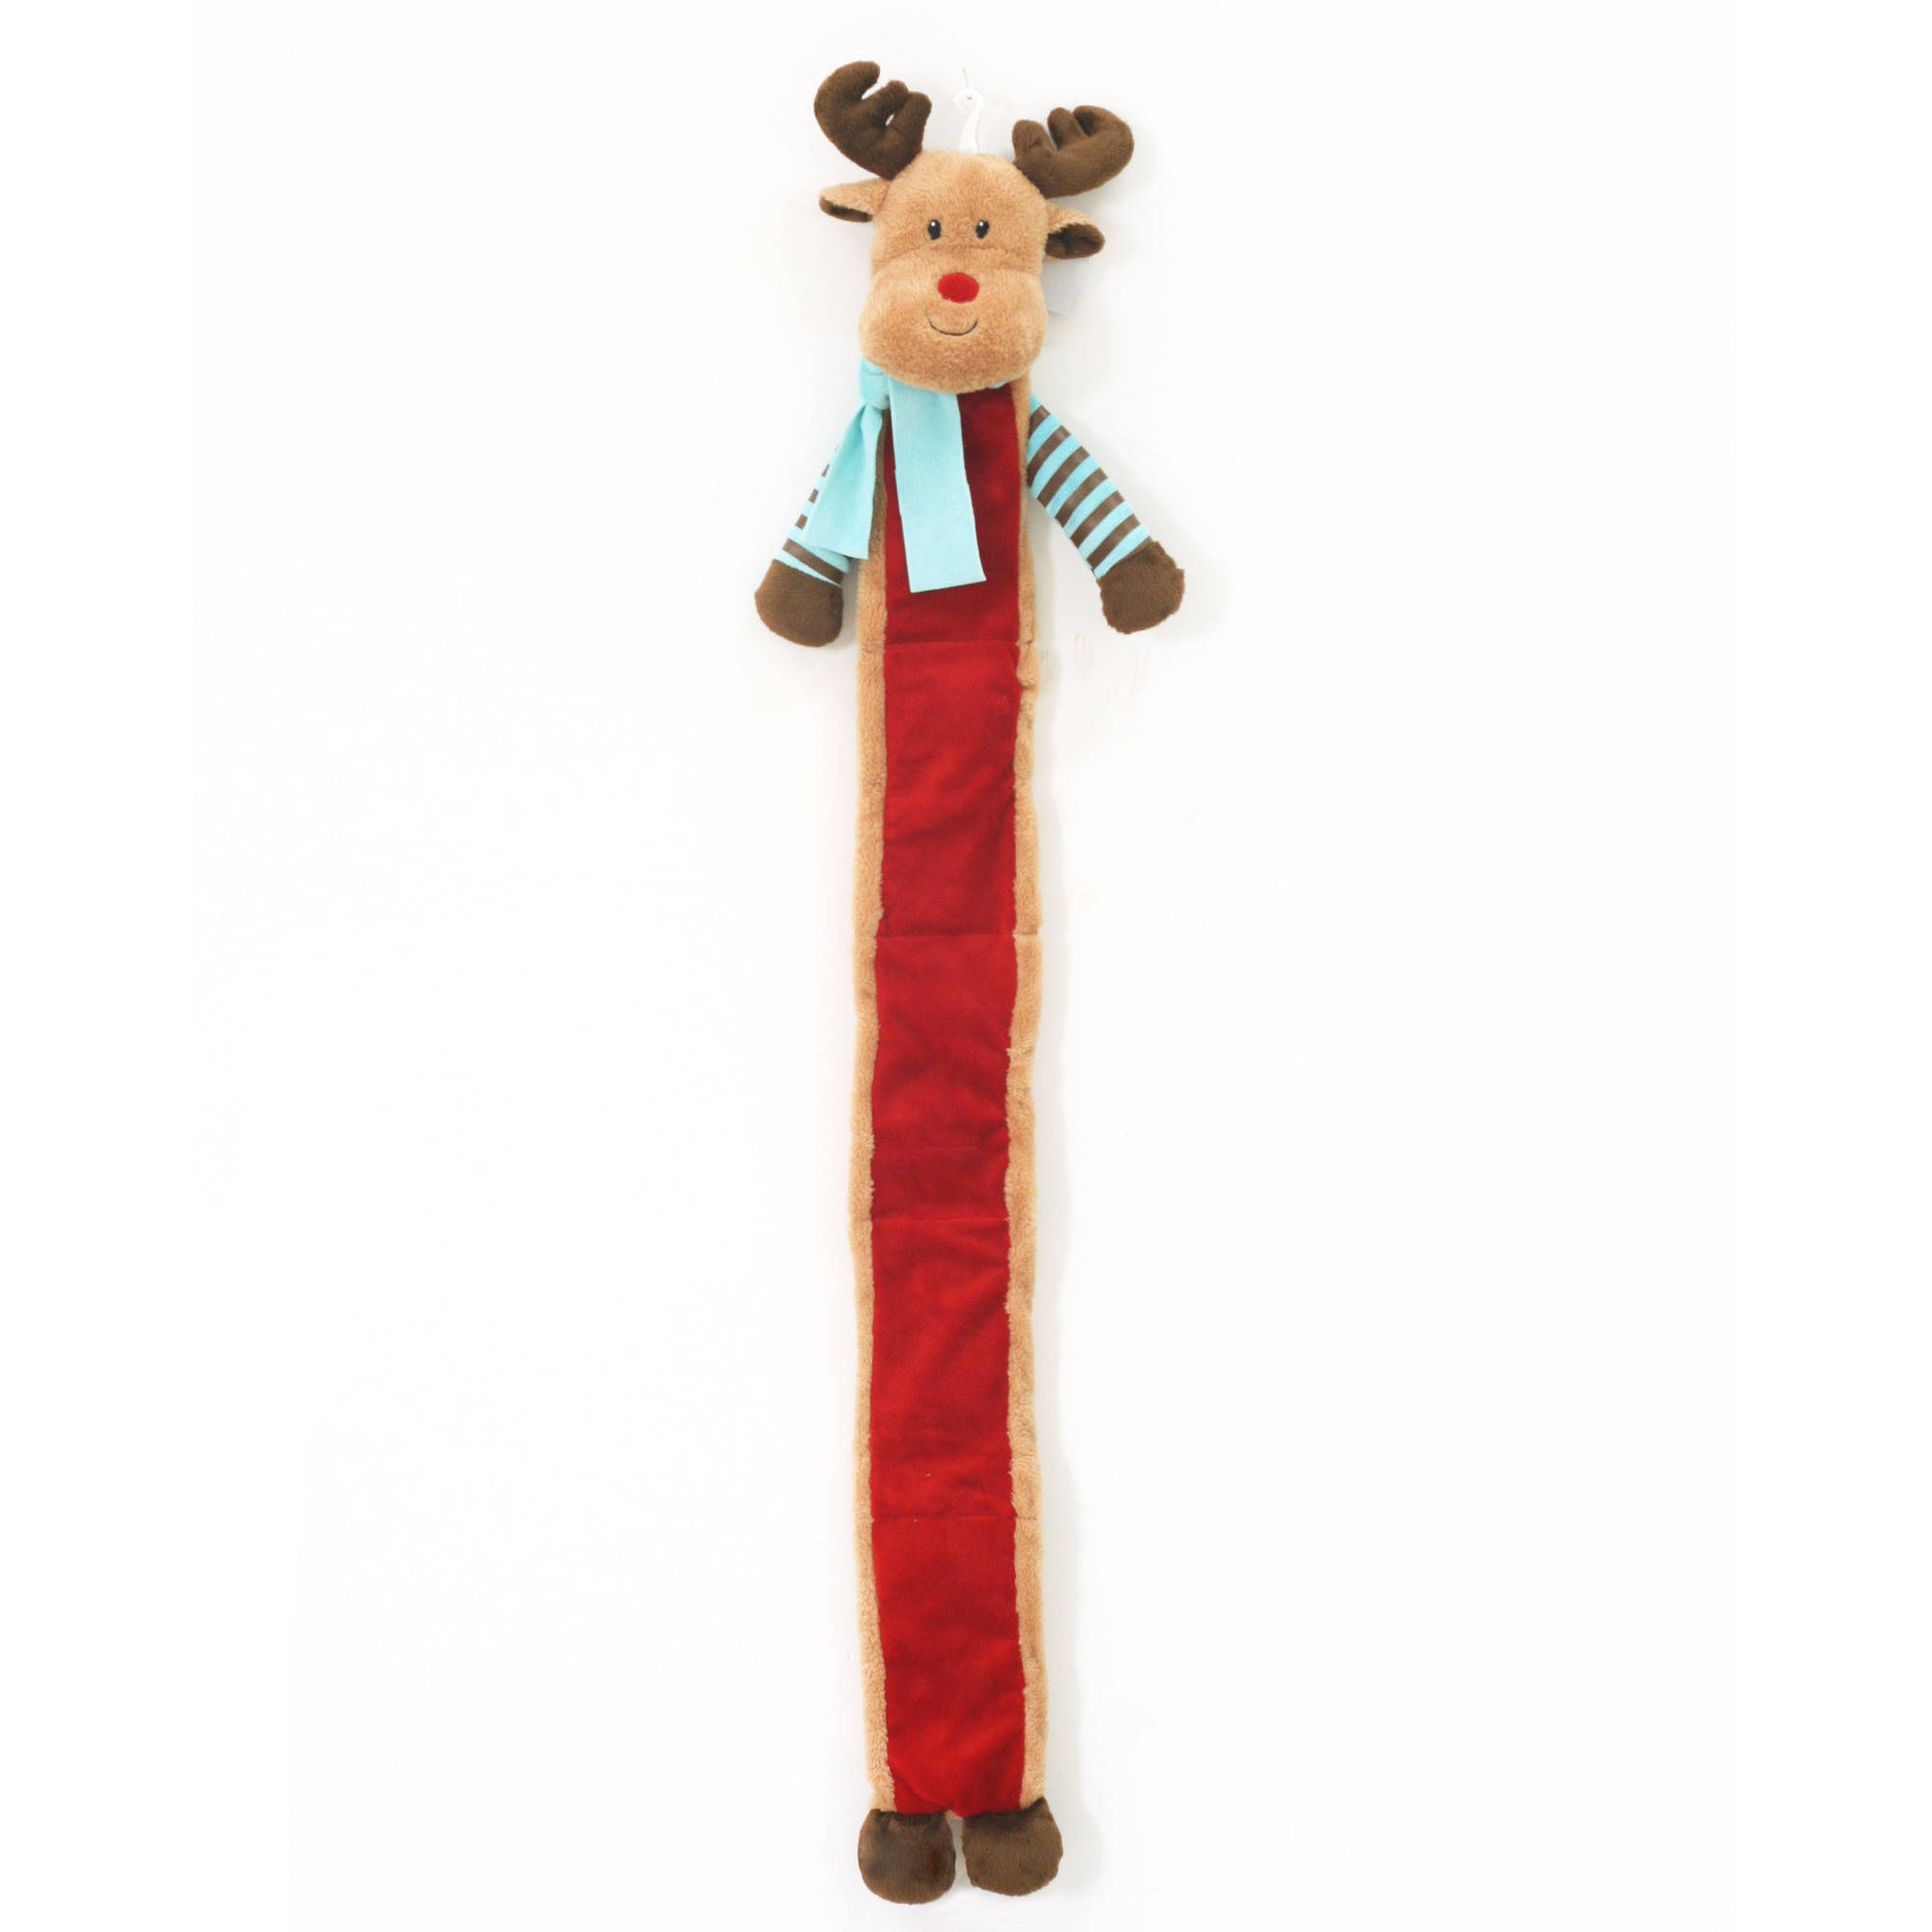 46-inch Extra Long Holiday Crinkly Reindeer Dog Toy by CHUANGYI